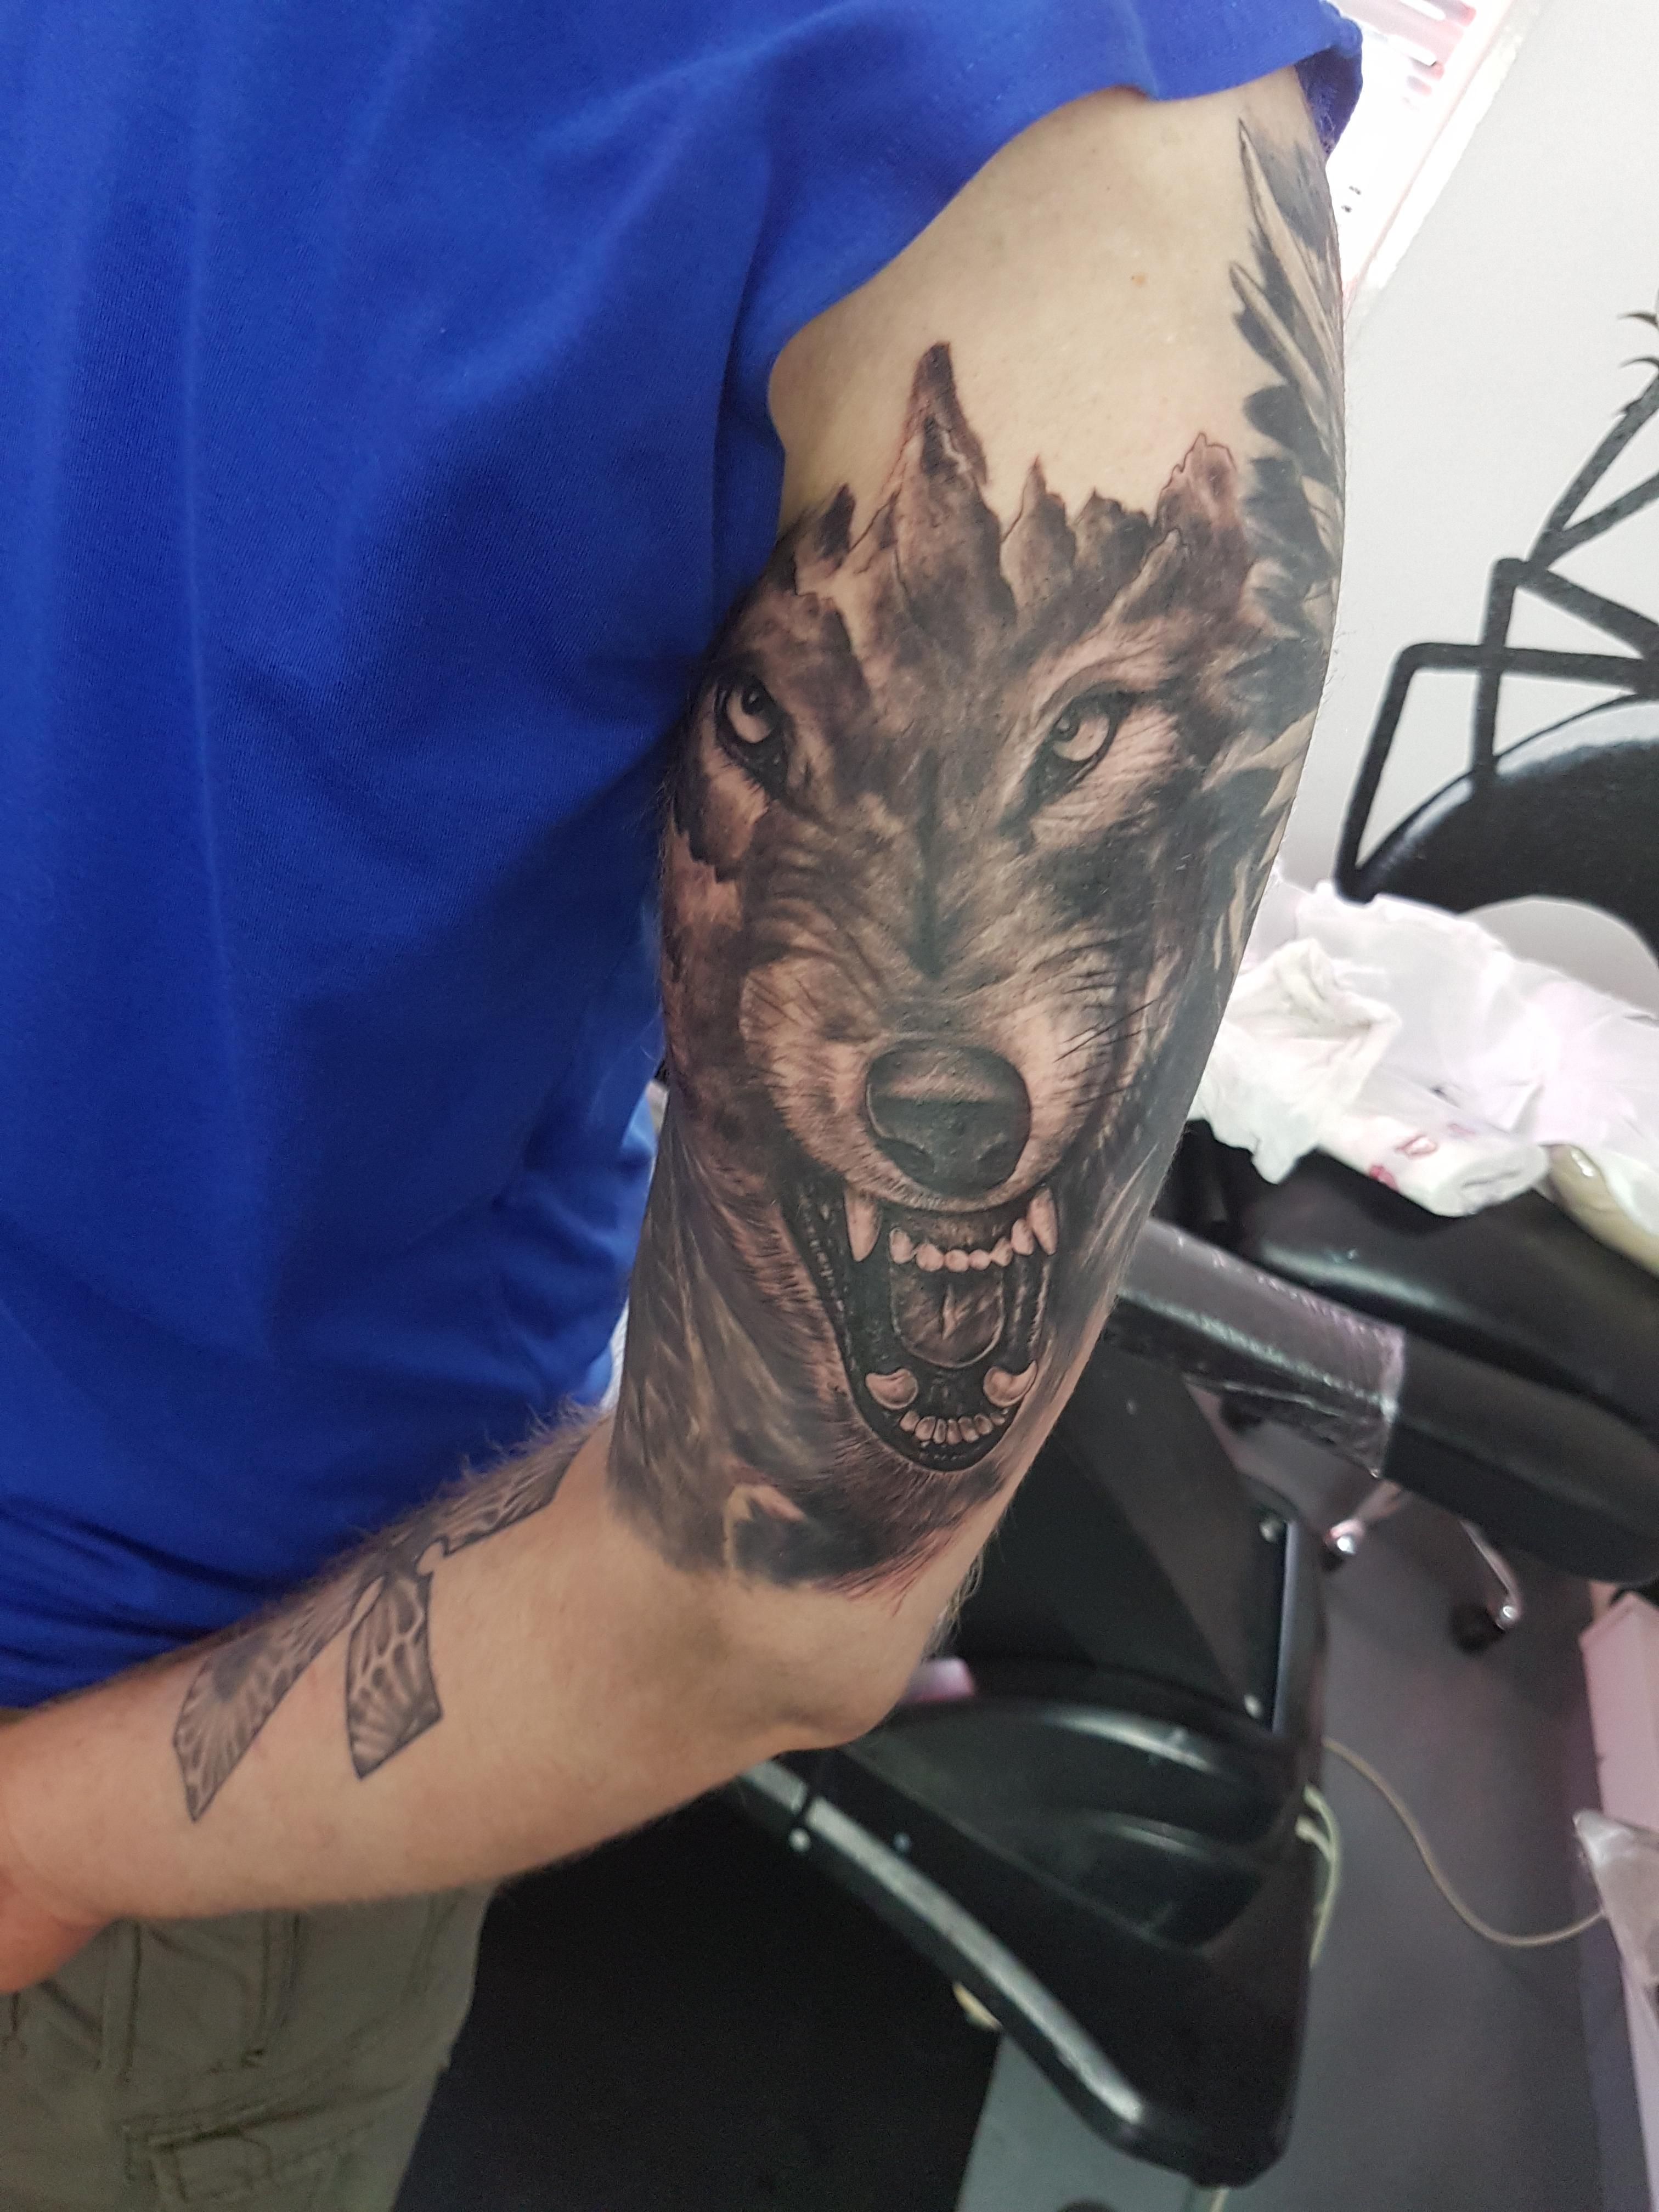 Newest tattoo by Gido from Captain Ahab's Tattoo Studio in Mildenhall UK